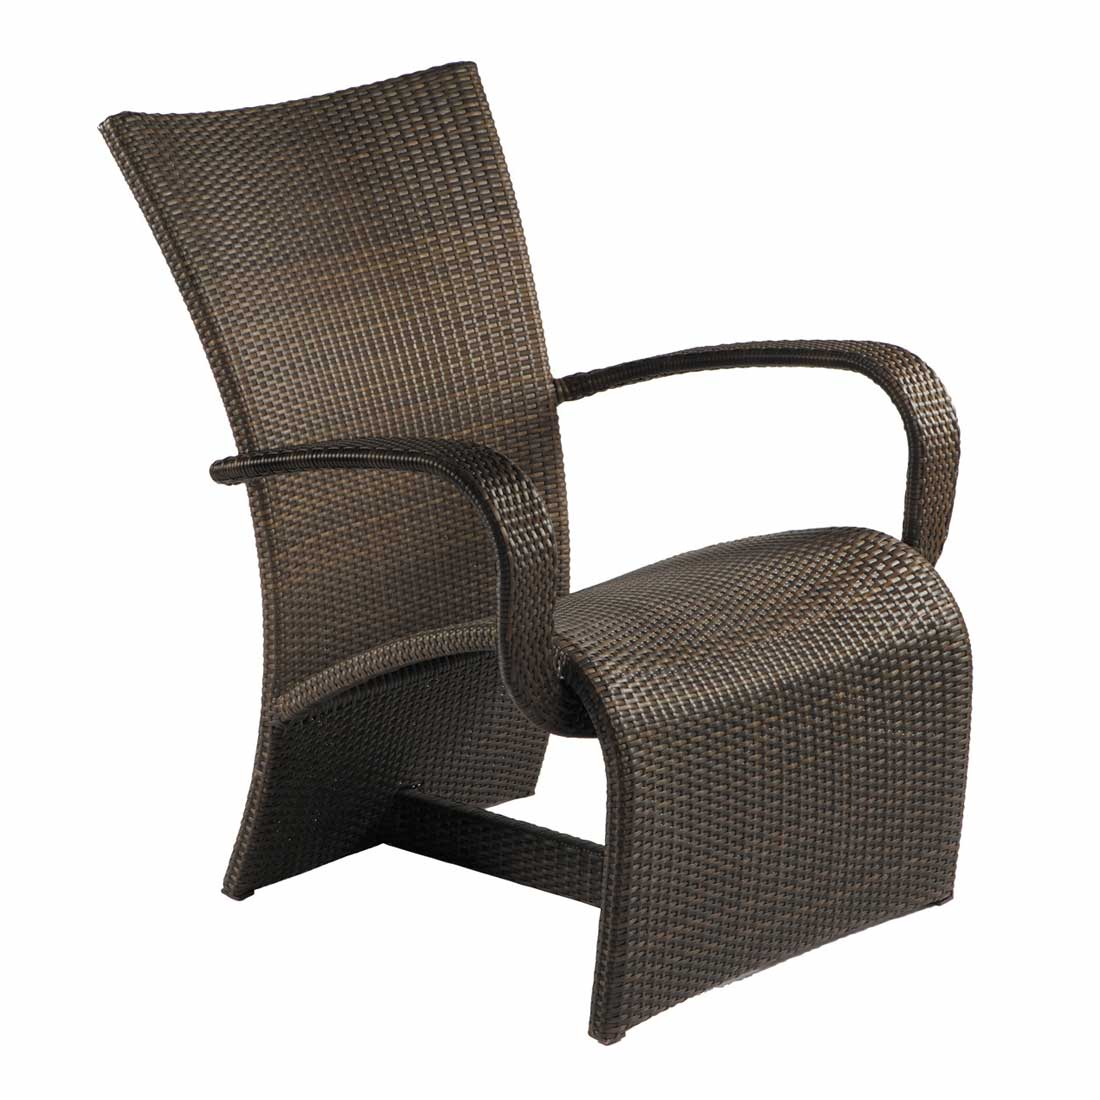 Halo Lounge Chair Summer Classics Contract